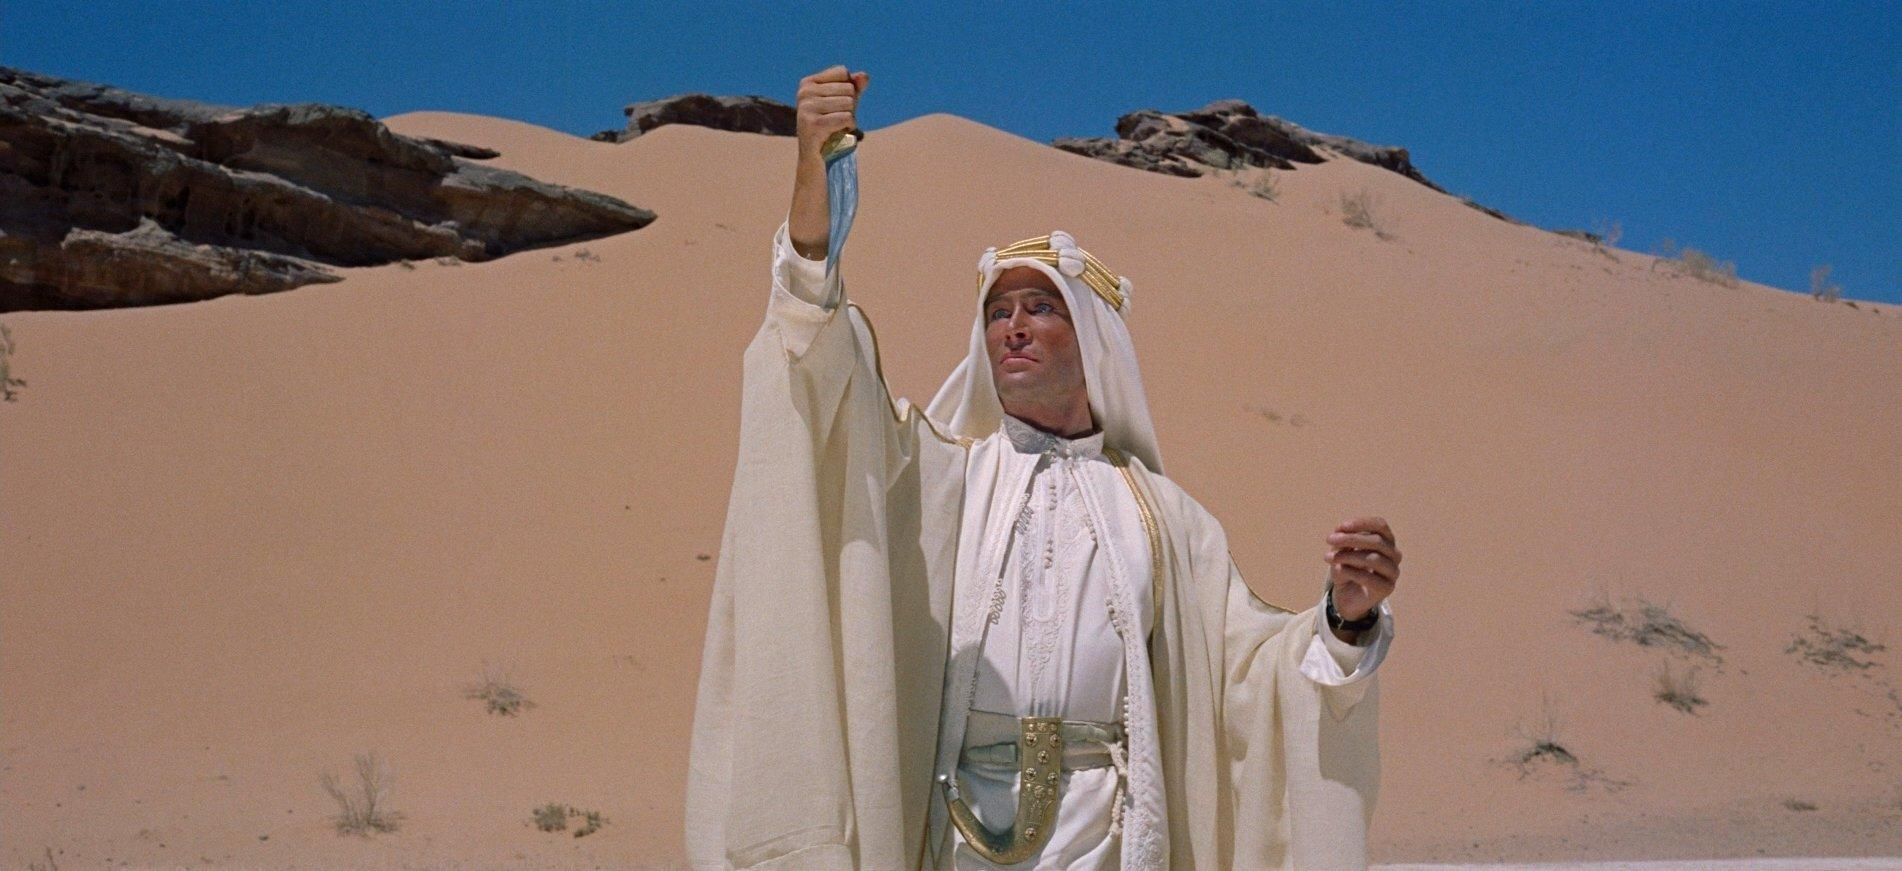 Lawrence Of Arabia Wallpaper and Background Image | 1902x871 | ID ...